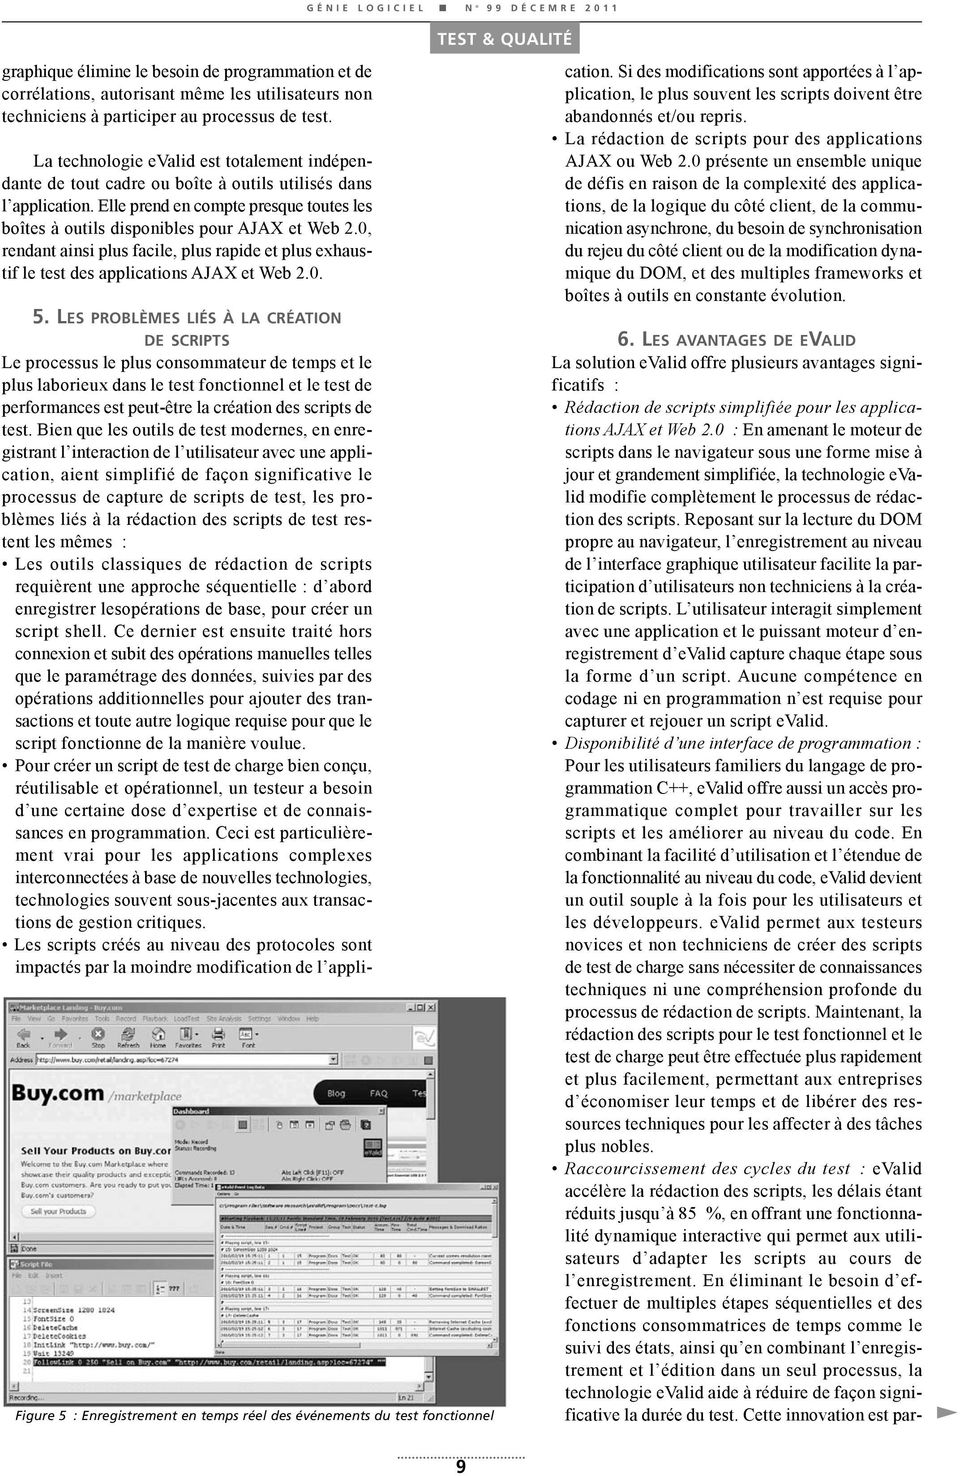 0, rendant ainsi plus facile, plus rapide et plus exhaustif le test des applications AJAX et Web 2.0. Figure 5 : Enregistrement en temps réel des événements du test fonctionnel 5.